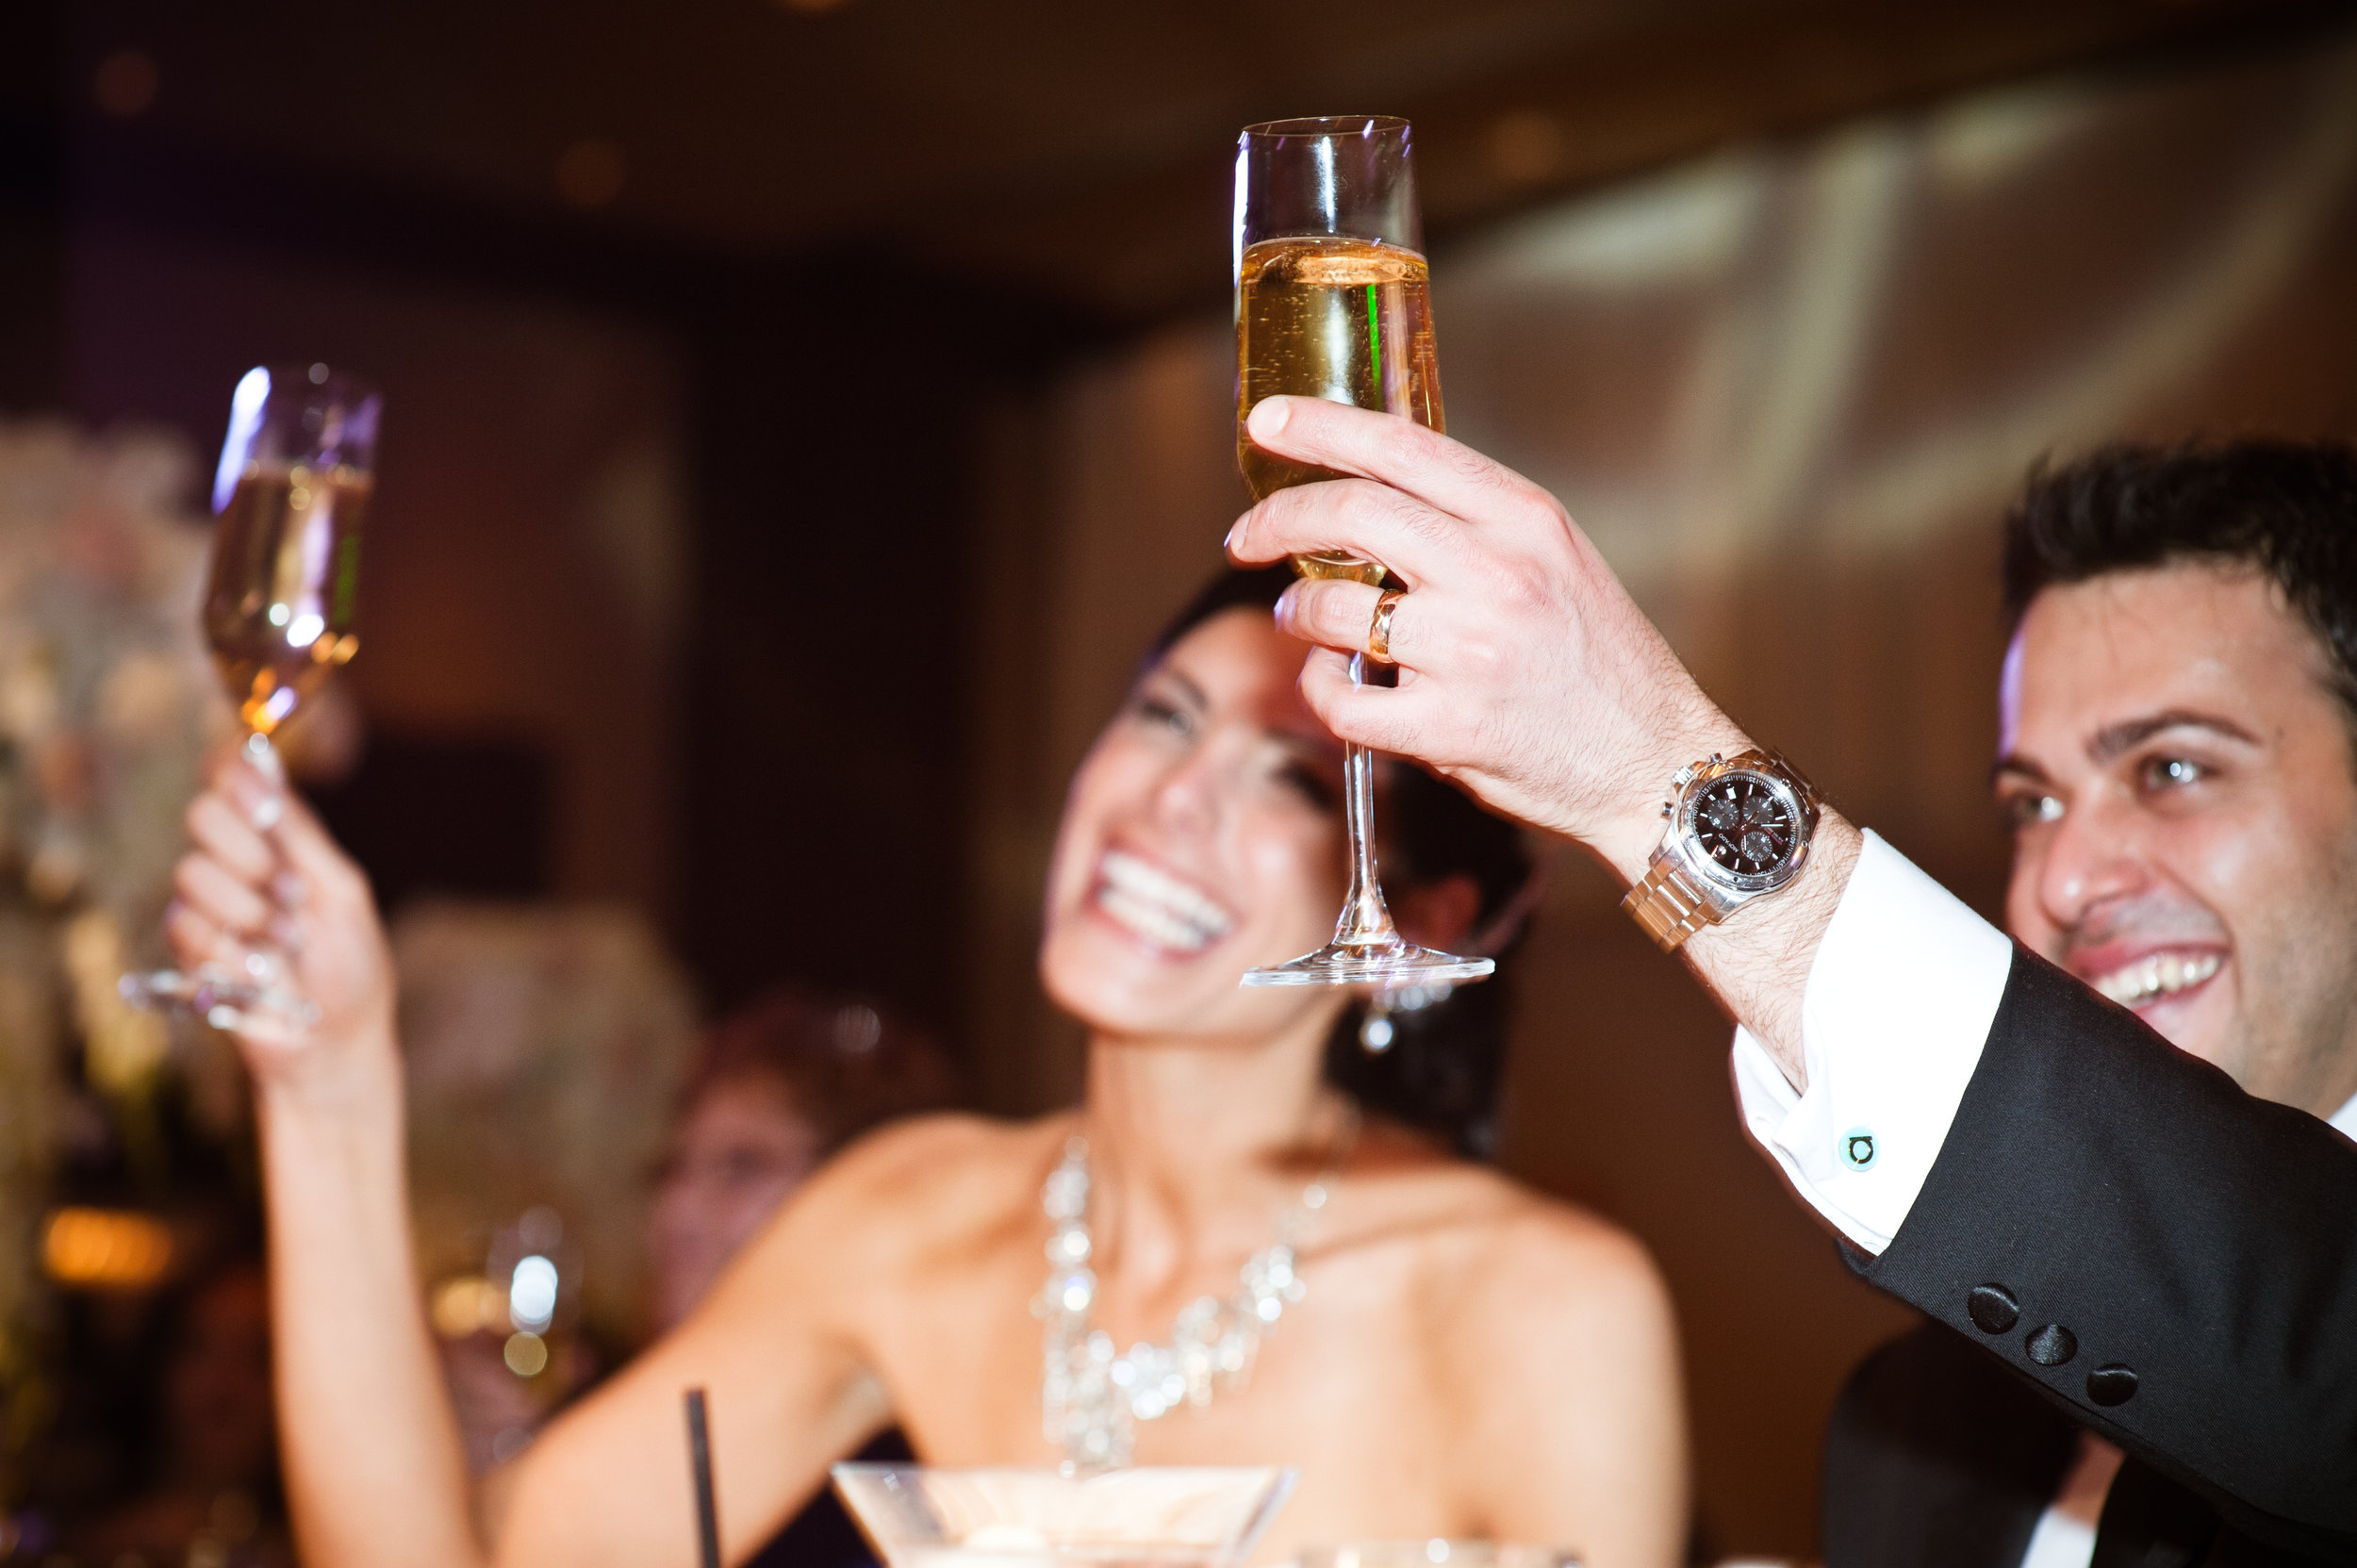 42 bride and groom toasting cheers to the bride and groom bride and groom candid photos Christine Johnson Photography Life Design Events.jpg